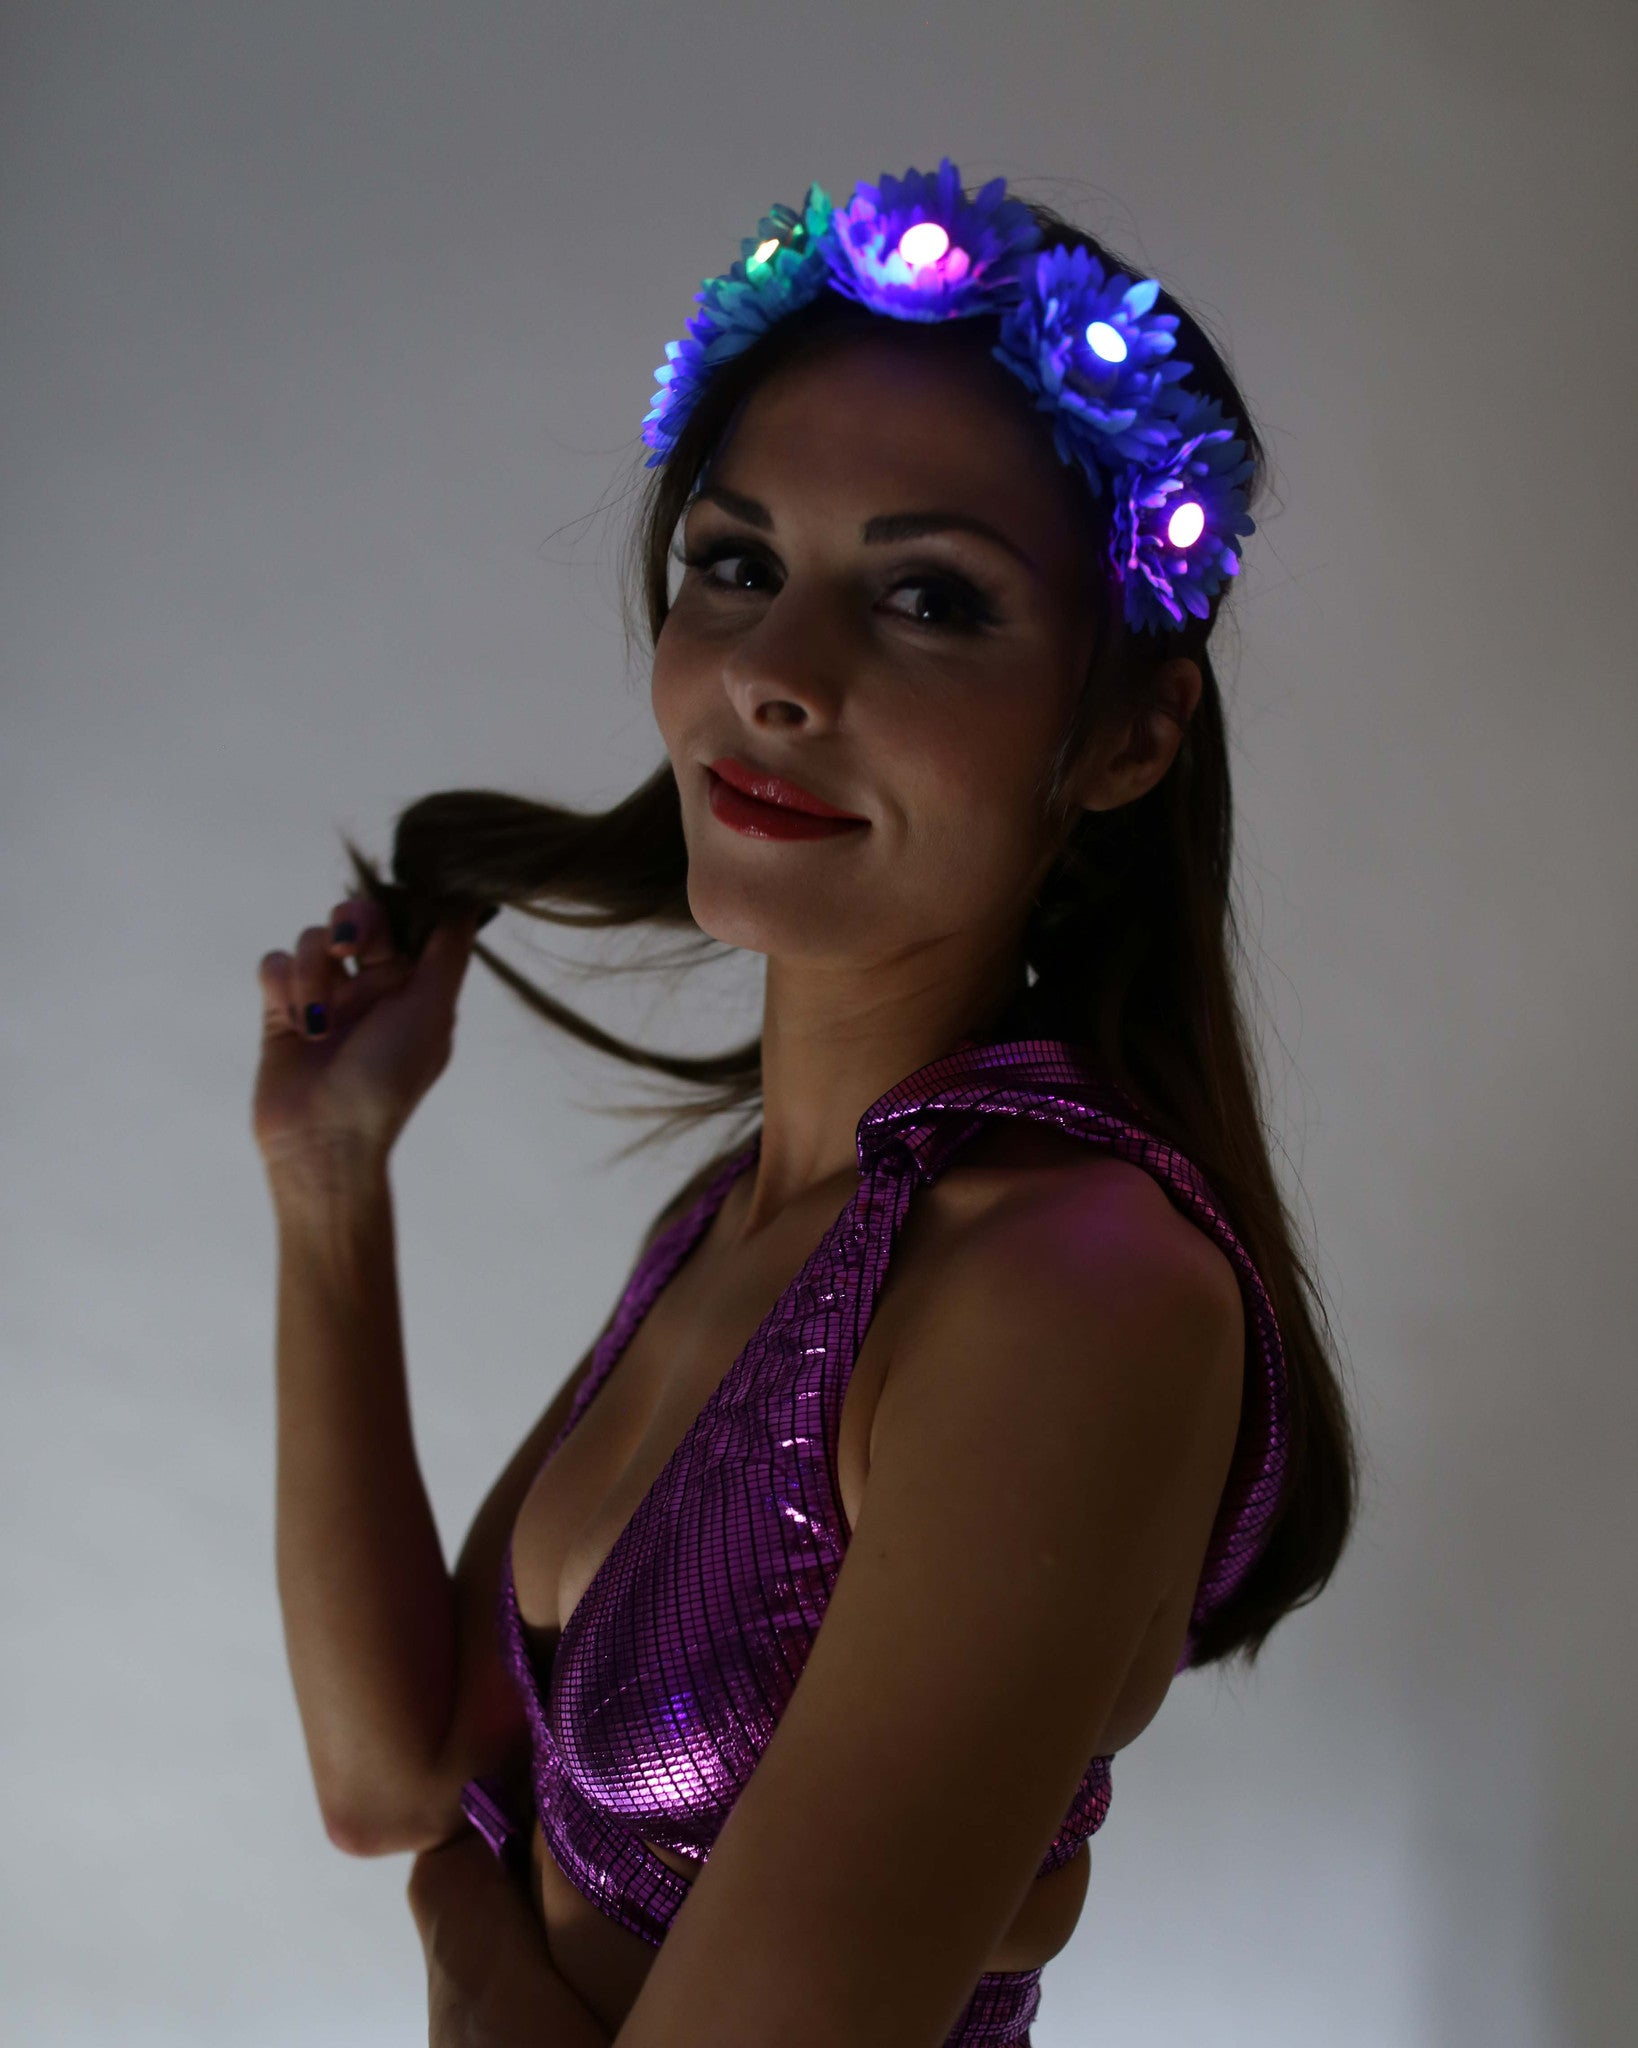 Light Up LED Flower Crown - Electric Styles | World's Number 1 Light Up Shoe Store - {product_type}} -  - 4